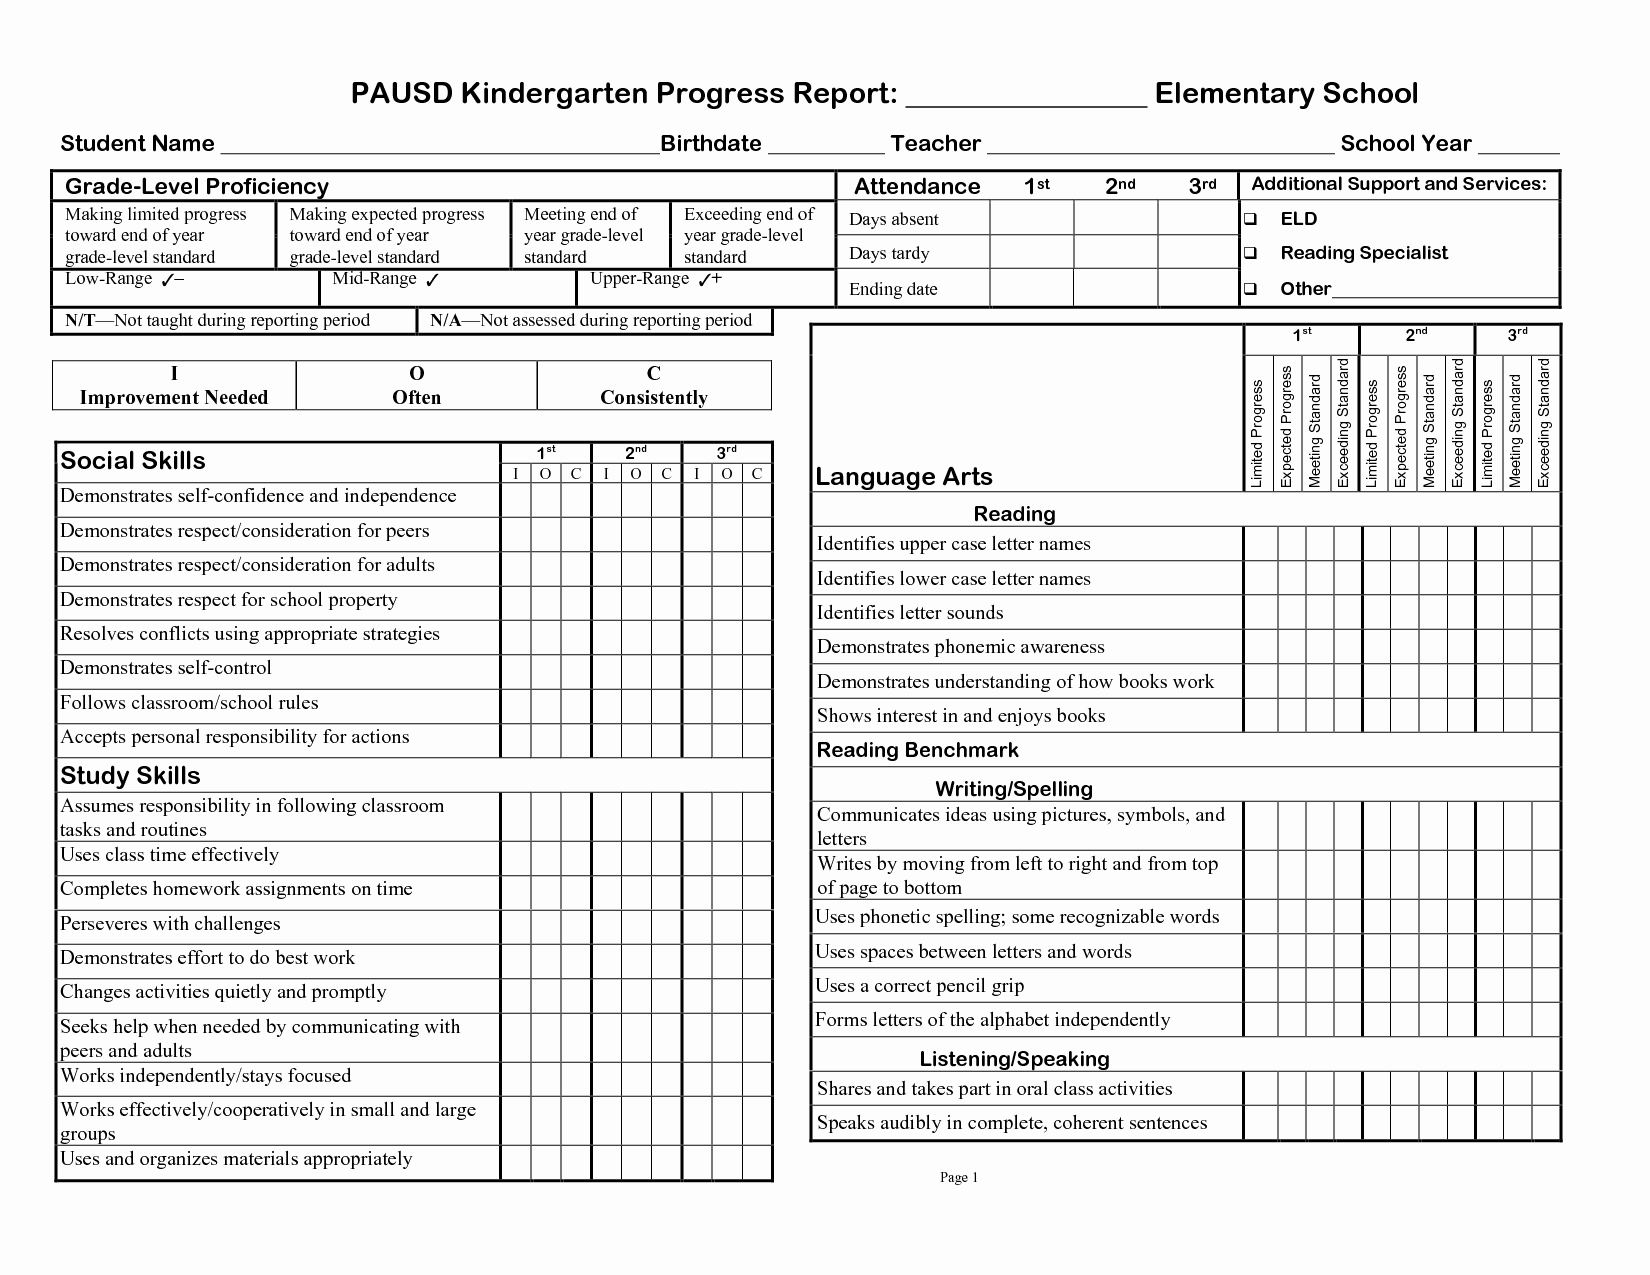 Kindergarten Progress Report Printable Best Of Printable Progress Report Template Google Search Education Pinterest